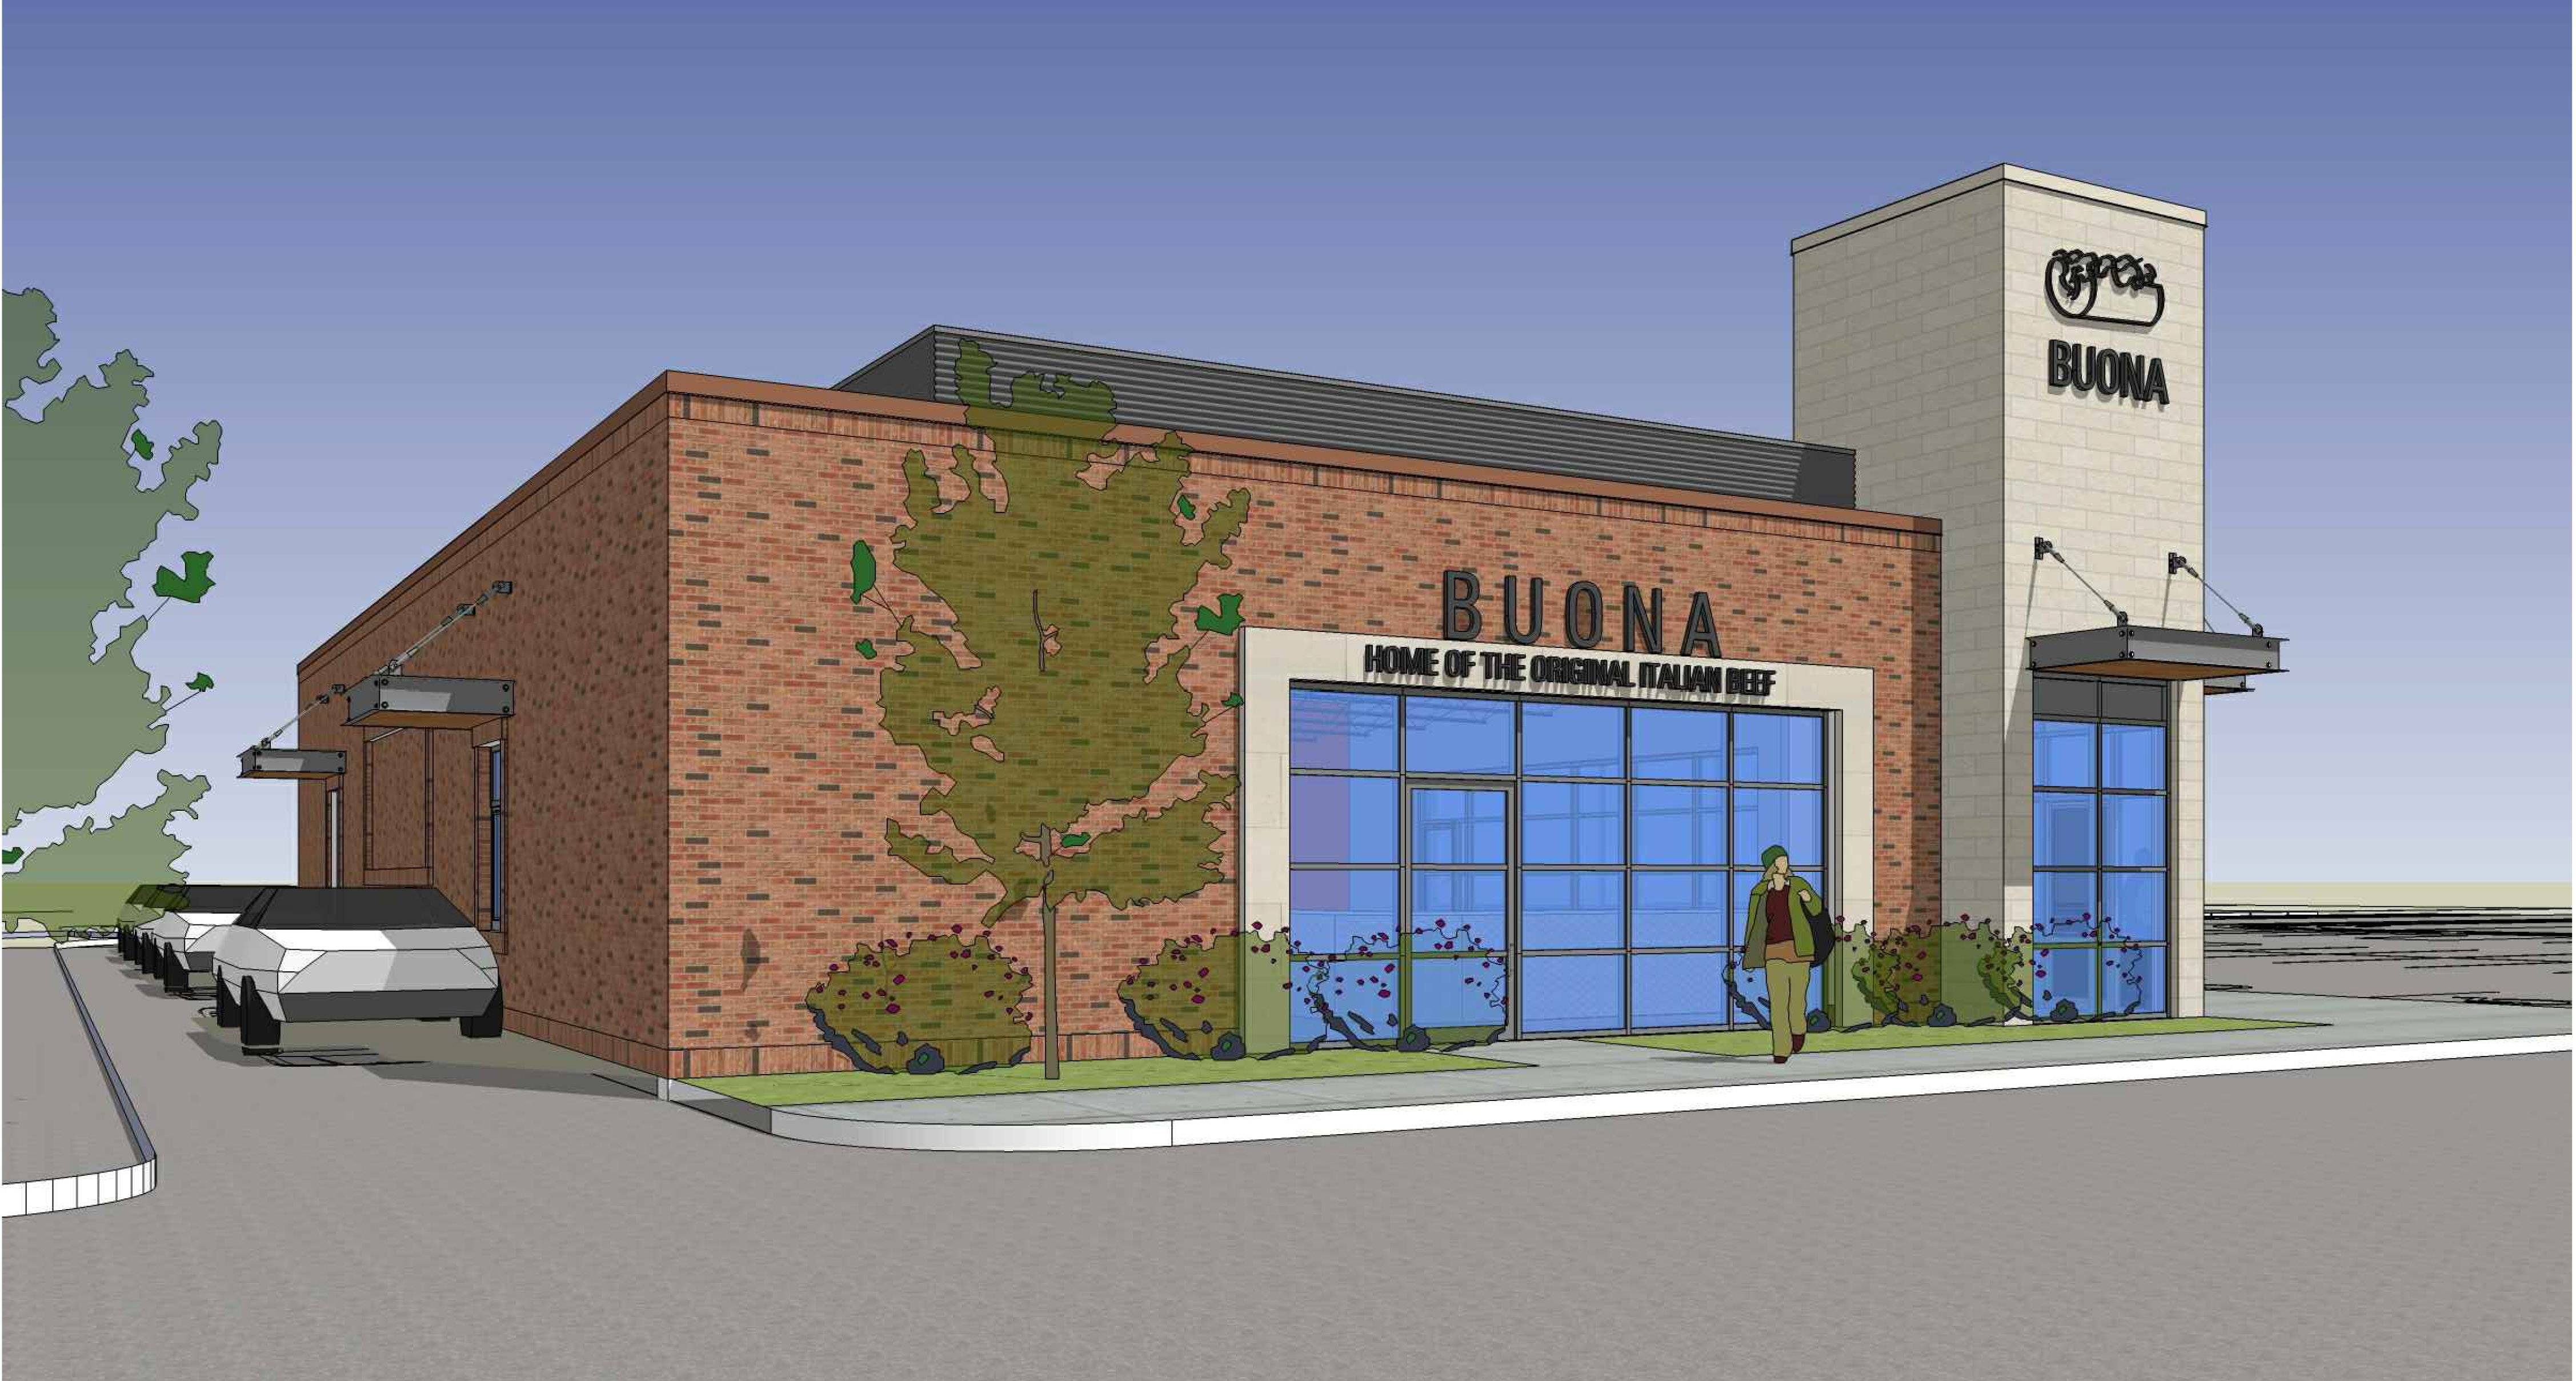 This rendering shows the proposed design for a new Buona Beef restaurant in Algonquin.